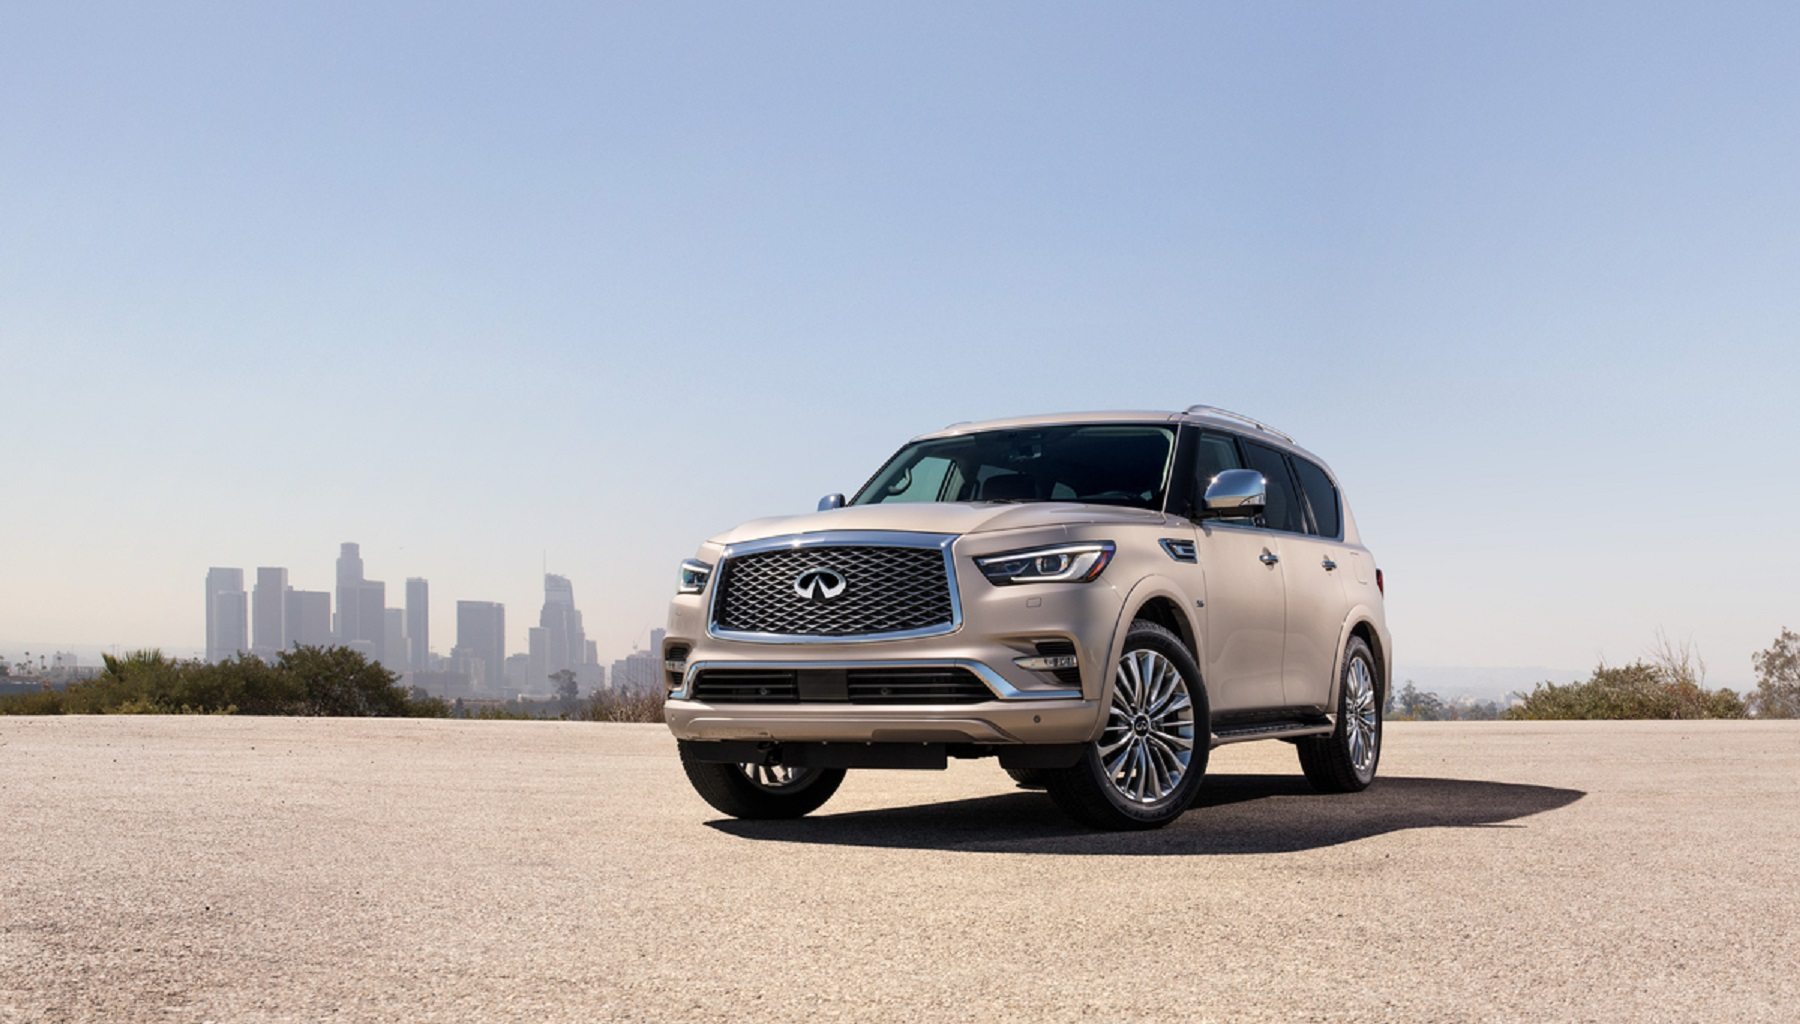 Manufacturer photo: The QX80, with its bold design and agile performance, attracts on average the youngest buyers in the full-size SUV segment